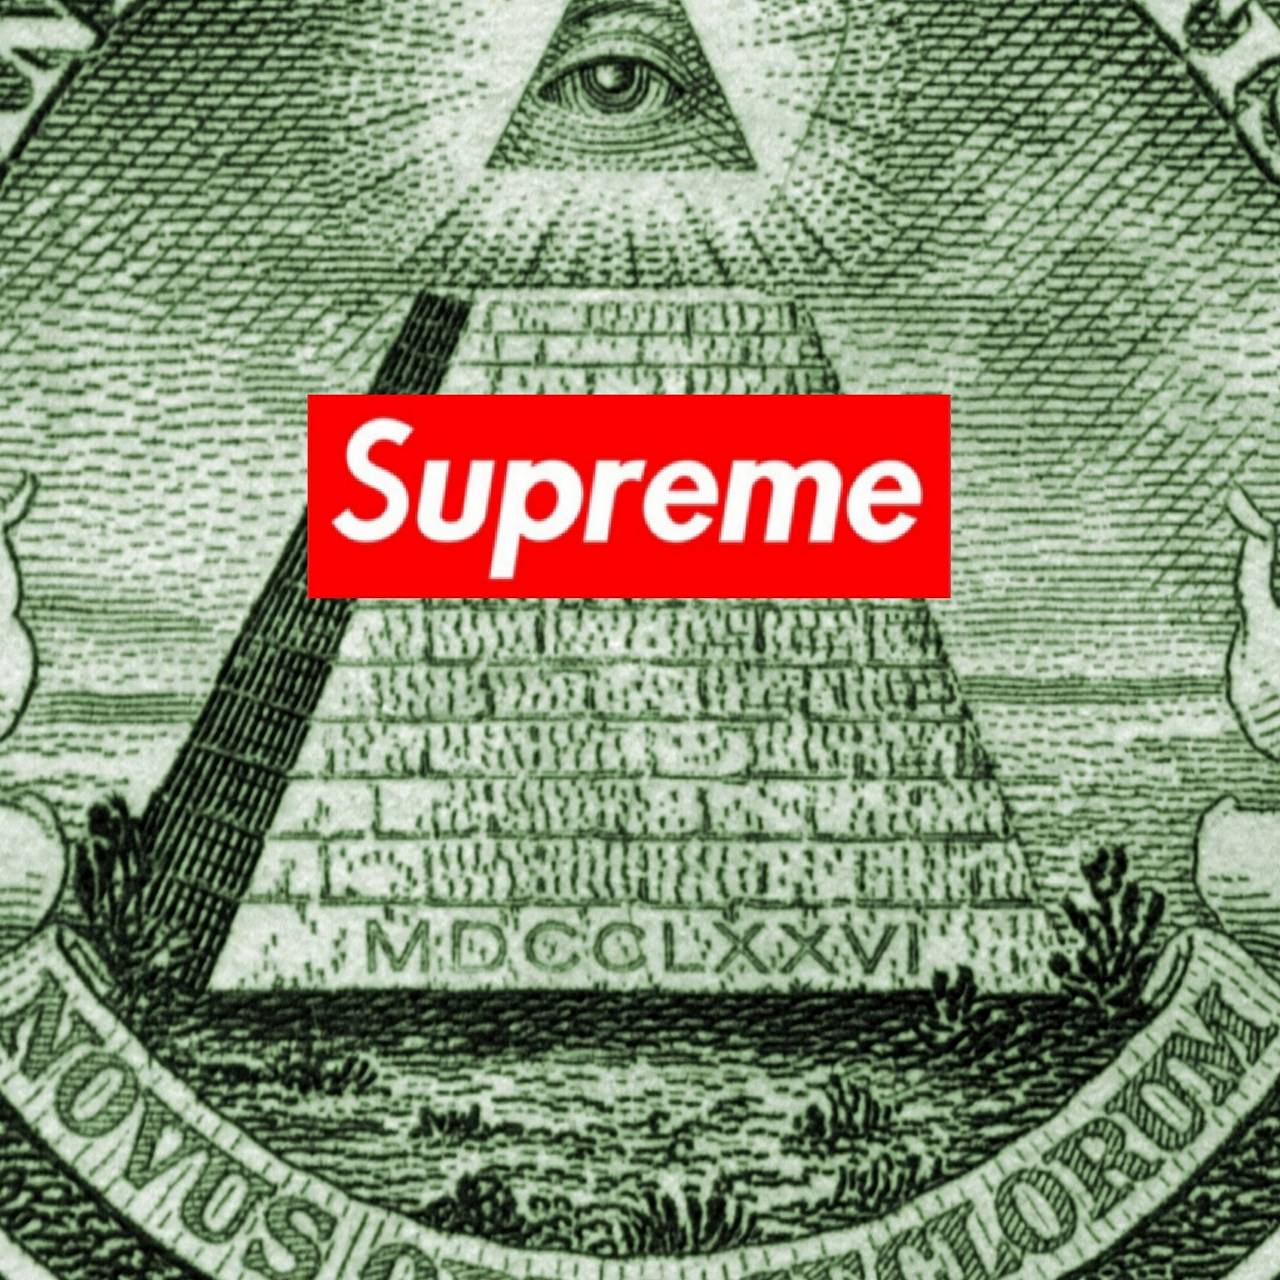 Supreme Illuminati Wallpapers Top Free Supreme Illuminati